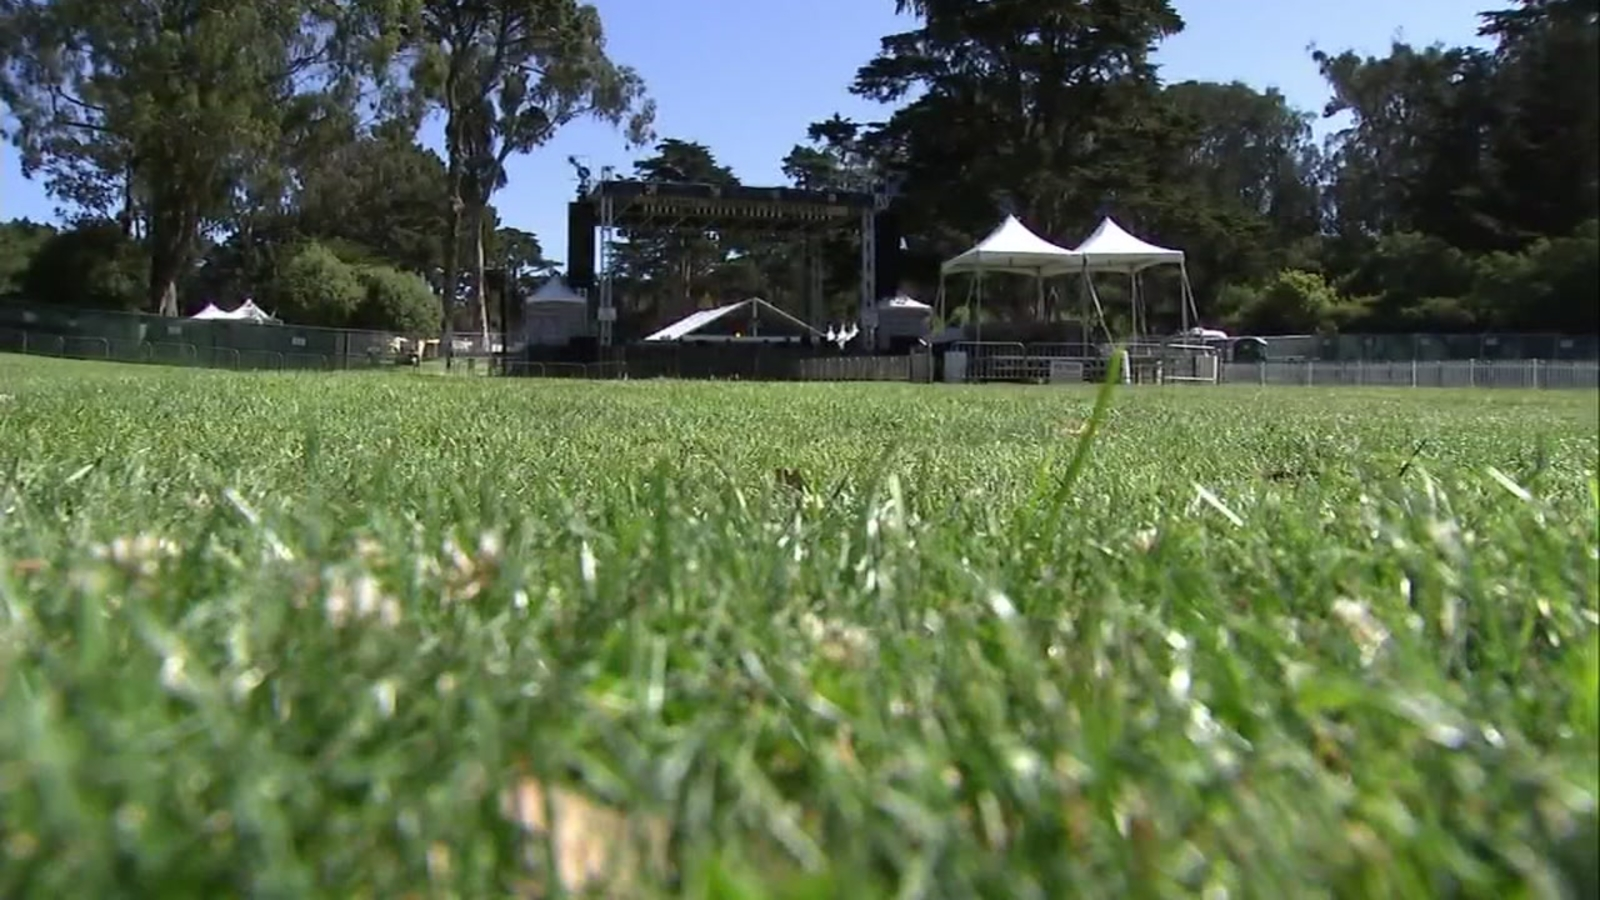 San Francisco increases security for Hardly Strictly Bluegrass, Fleet Week in wake of Gilroy shooting